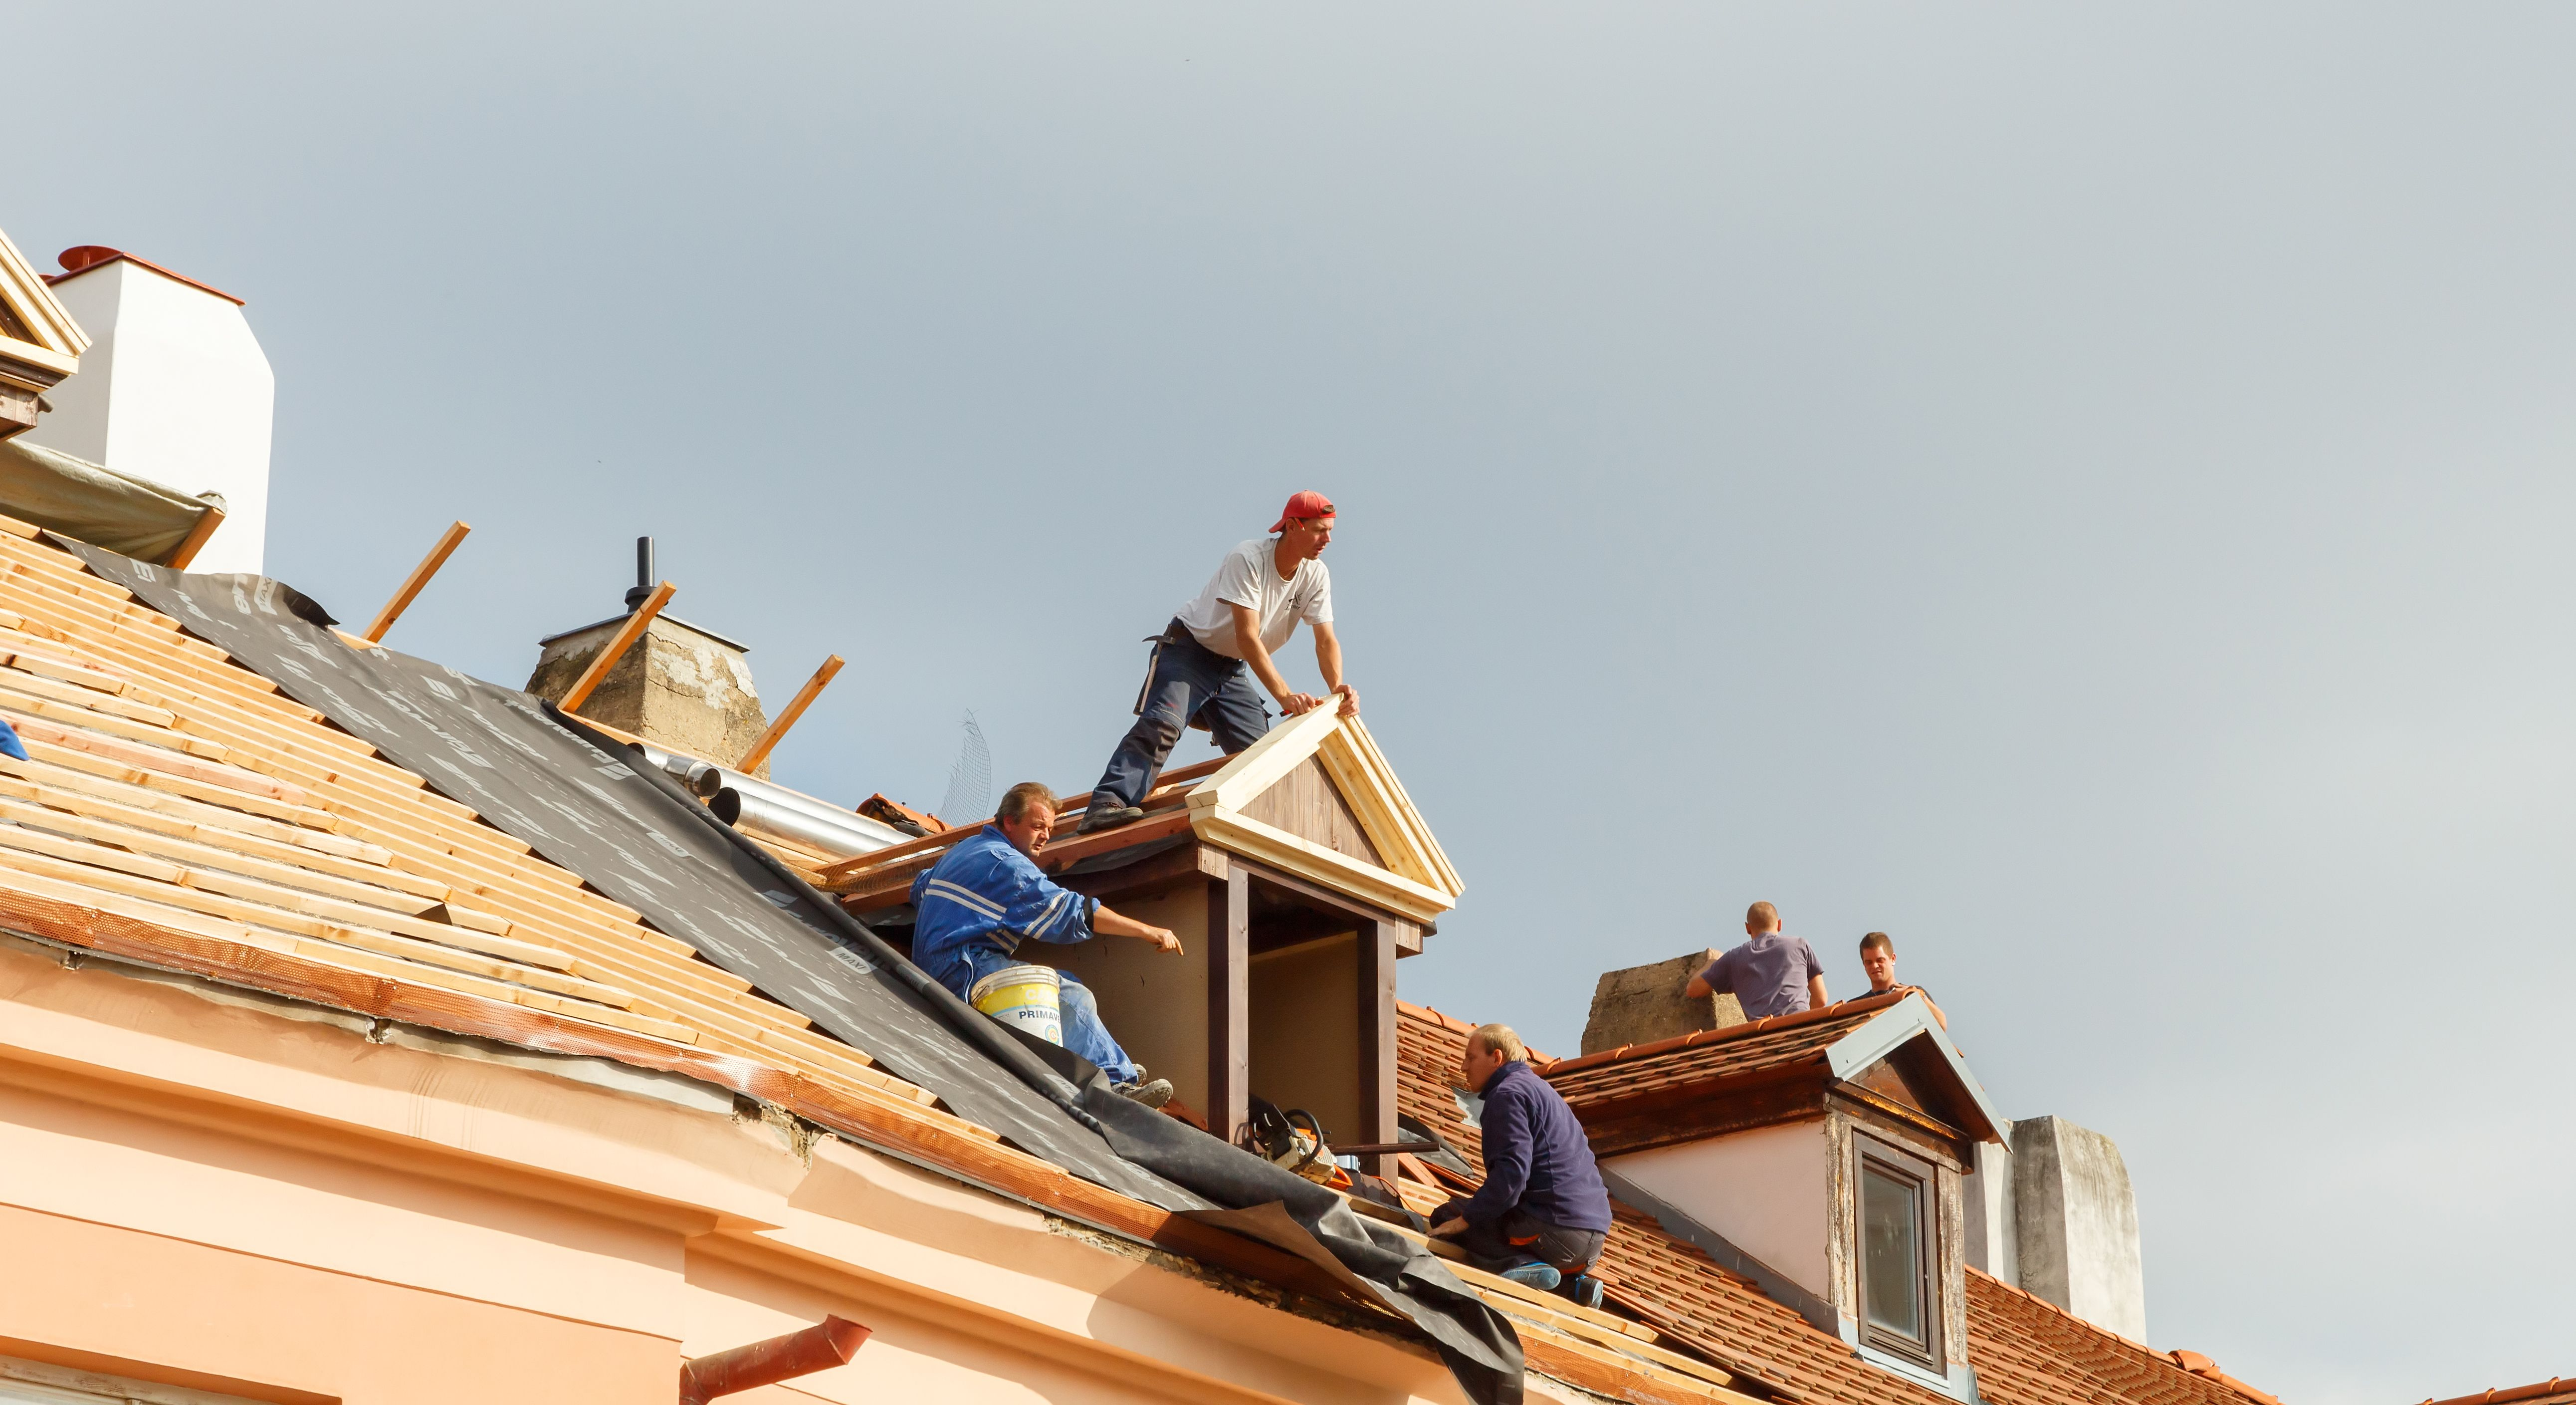 For Quality Roofing Services Call Us 888 227 1311 Claimconsultantsllc Roofing Contractors Roof Problems Roofing Services